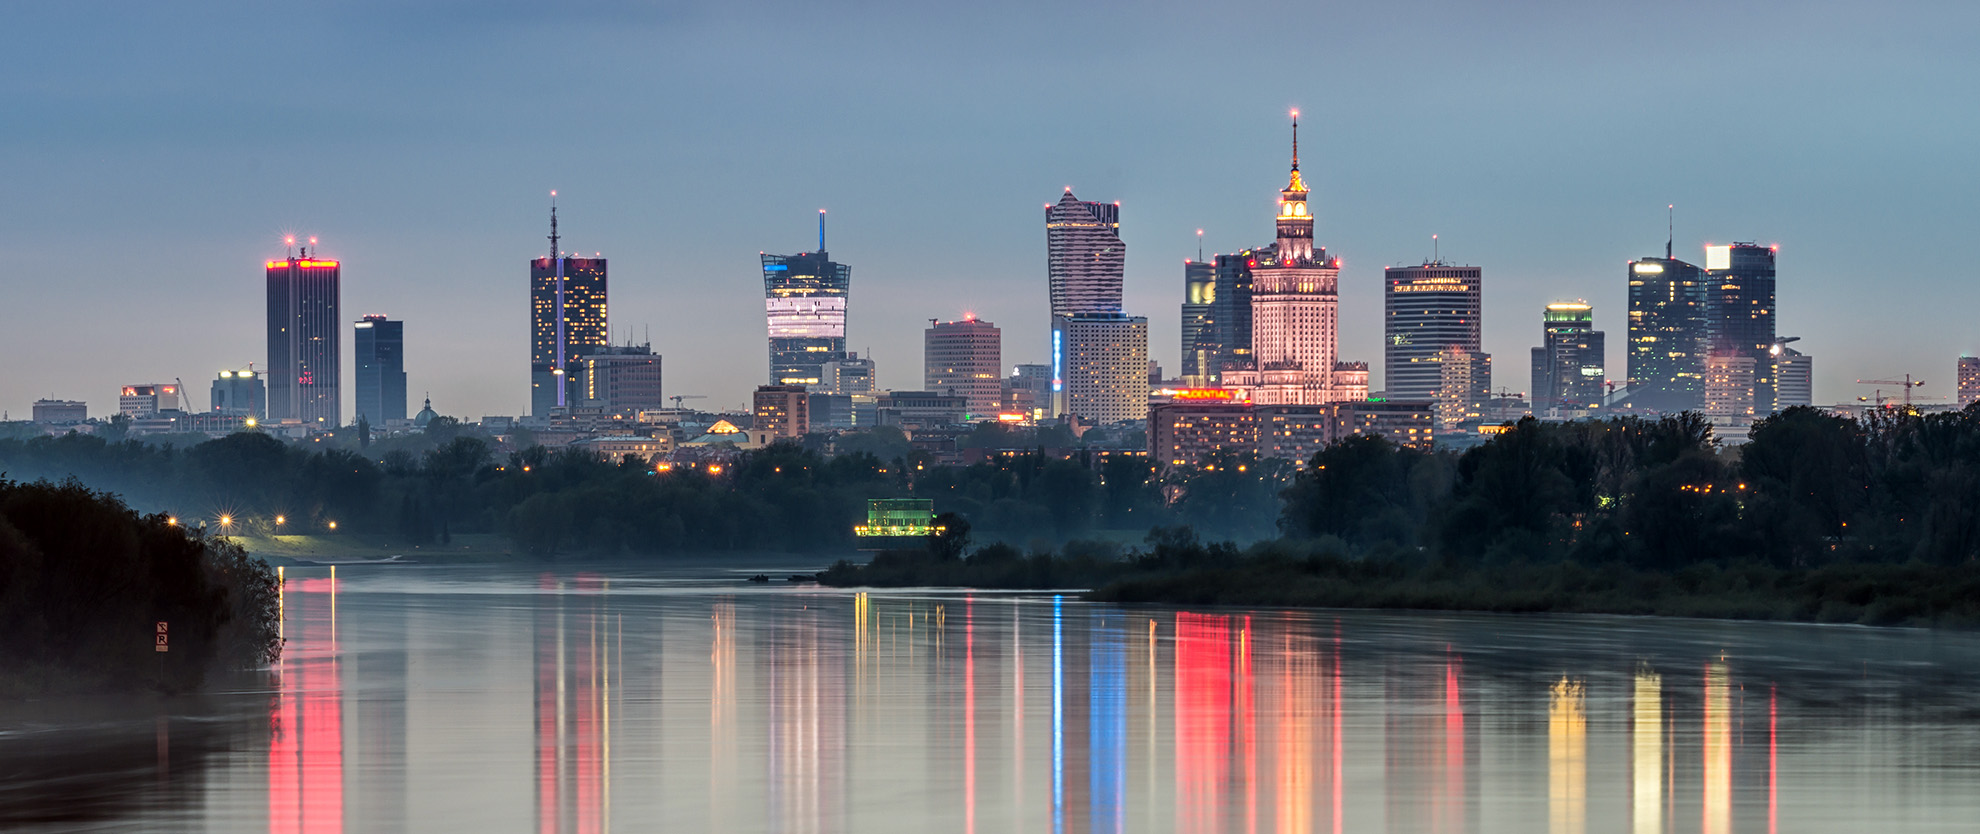 Night panorama of Warsaw skyline, Poland, over Vistula river in